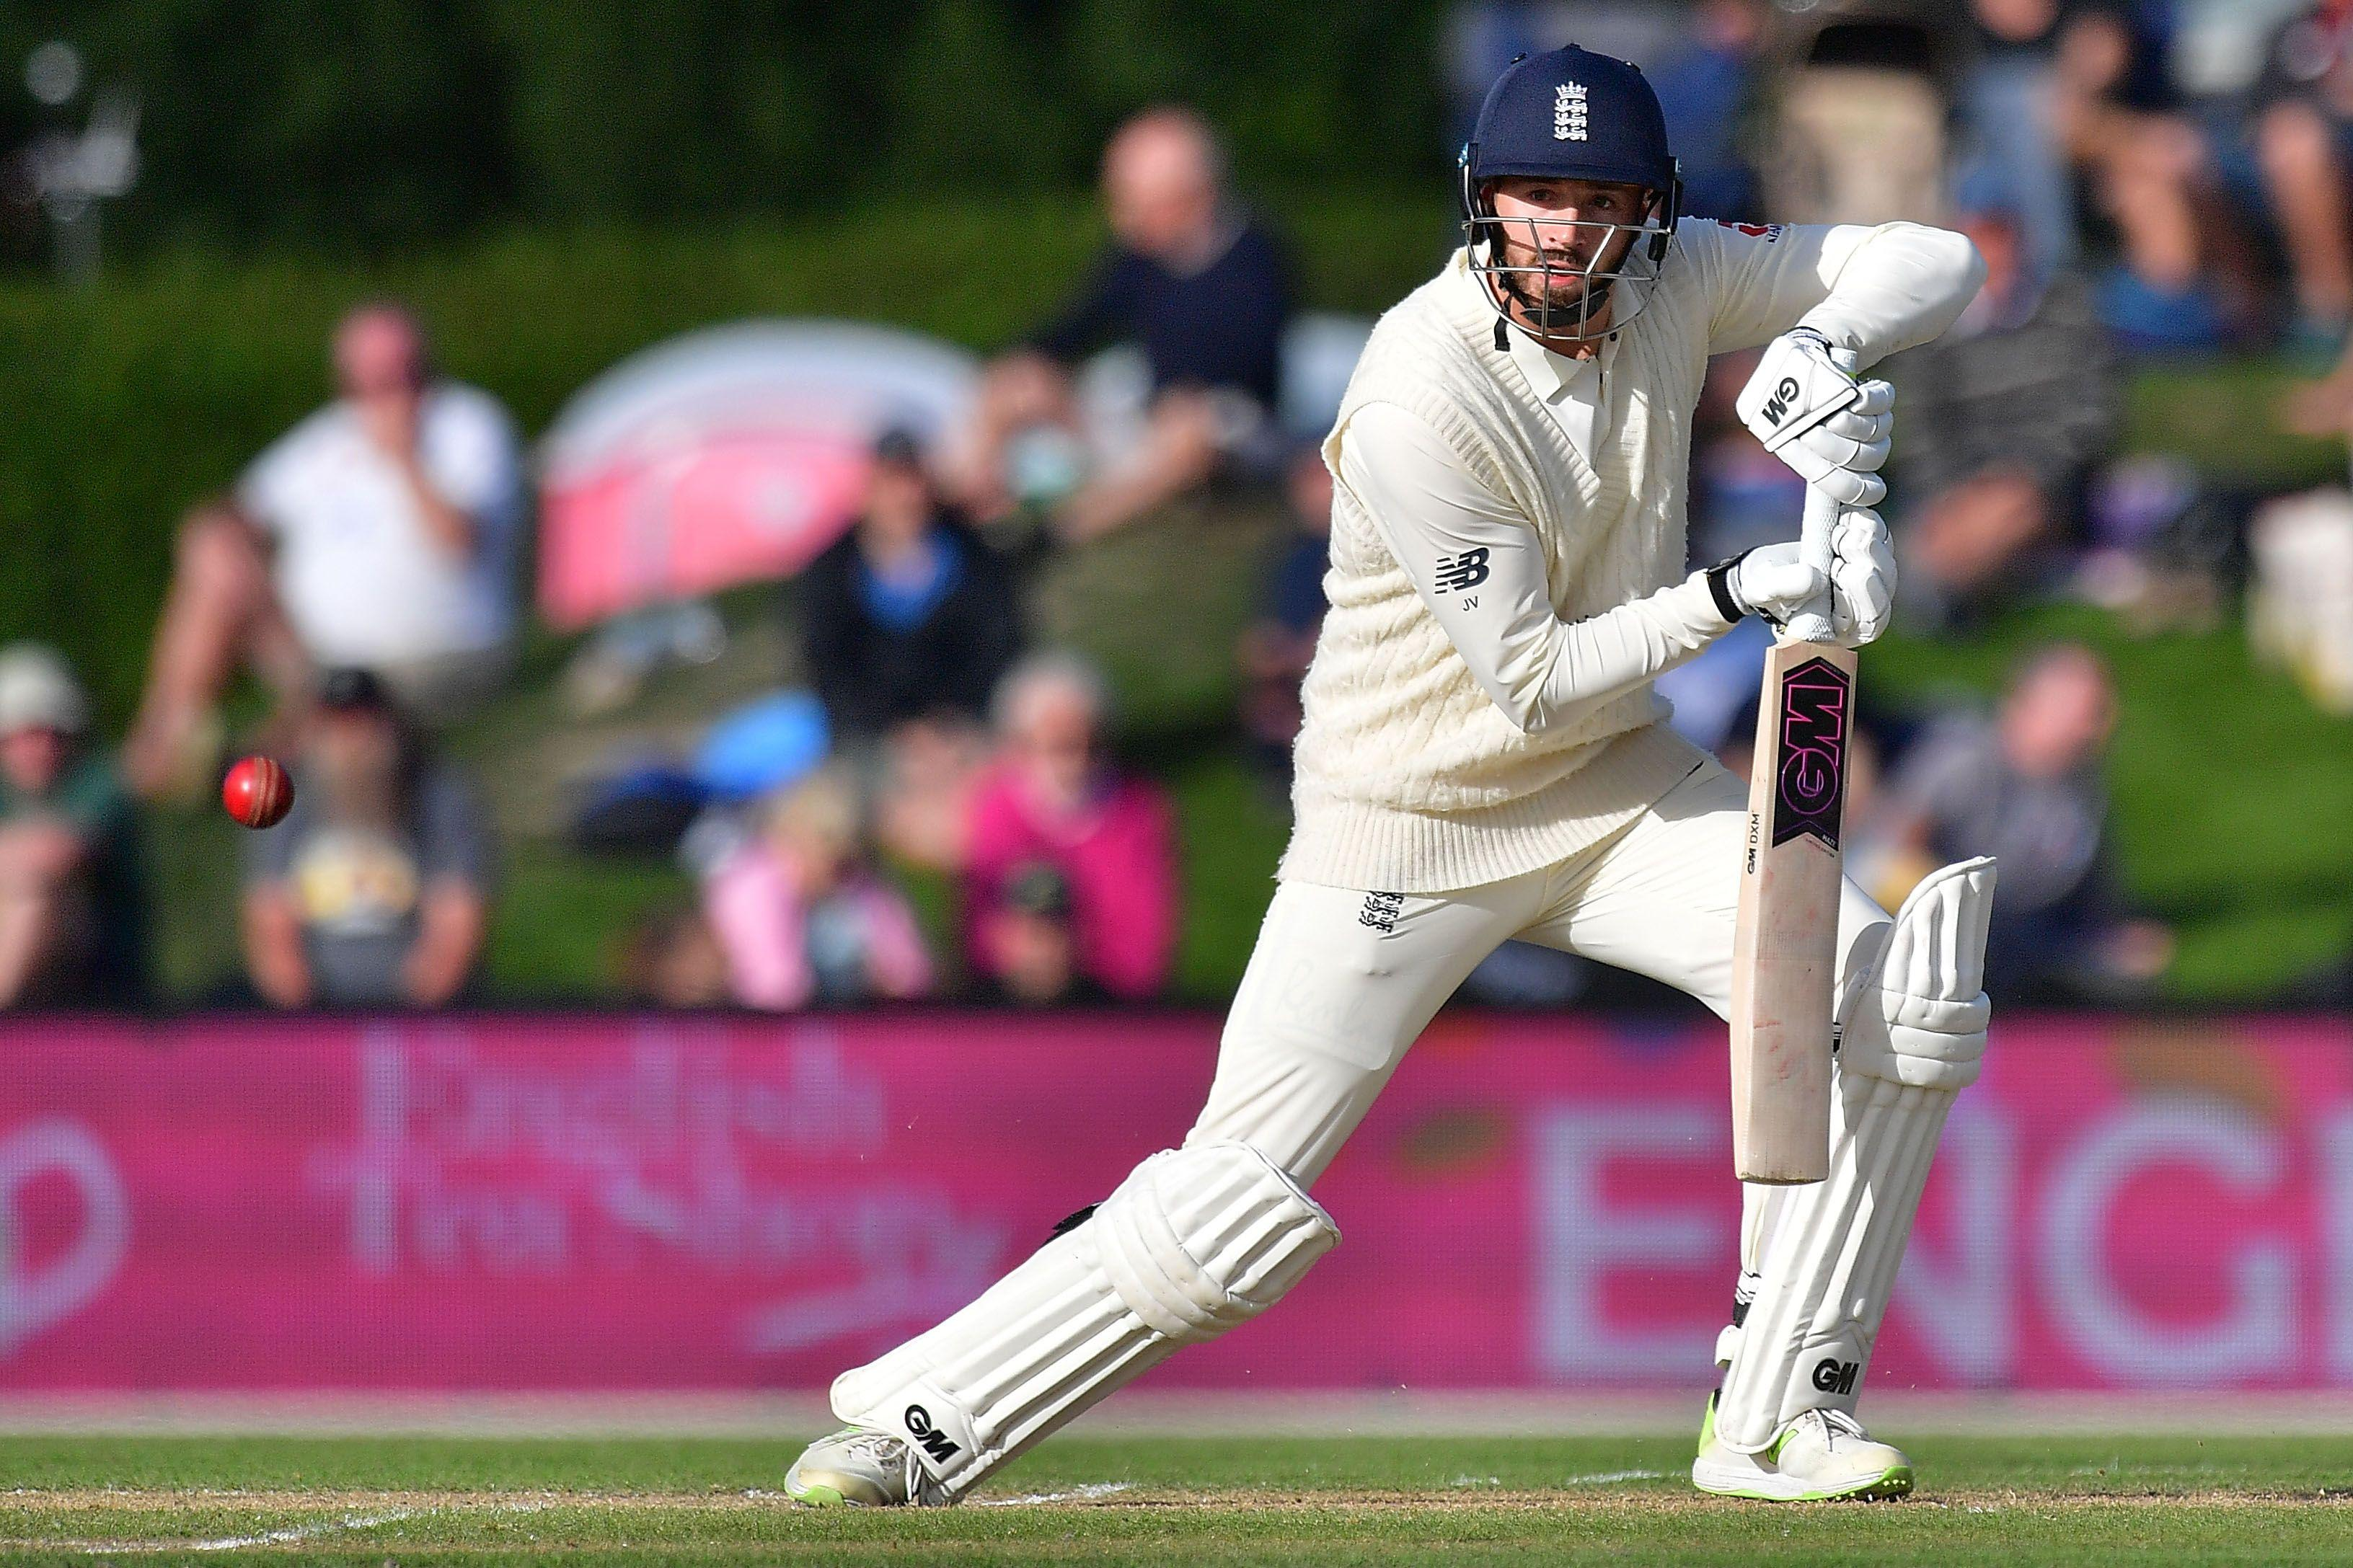 James Vince hit 76 runs to put England in total control against New Zealand